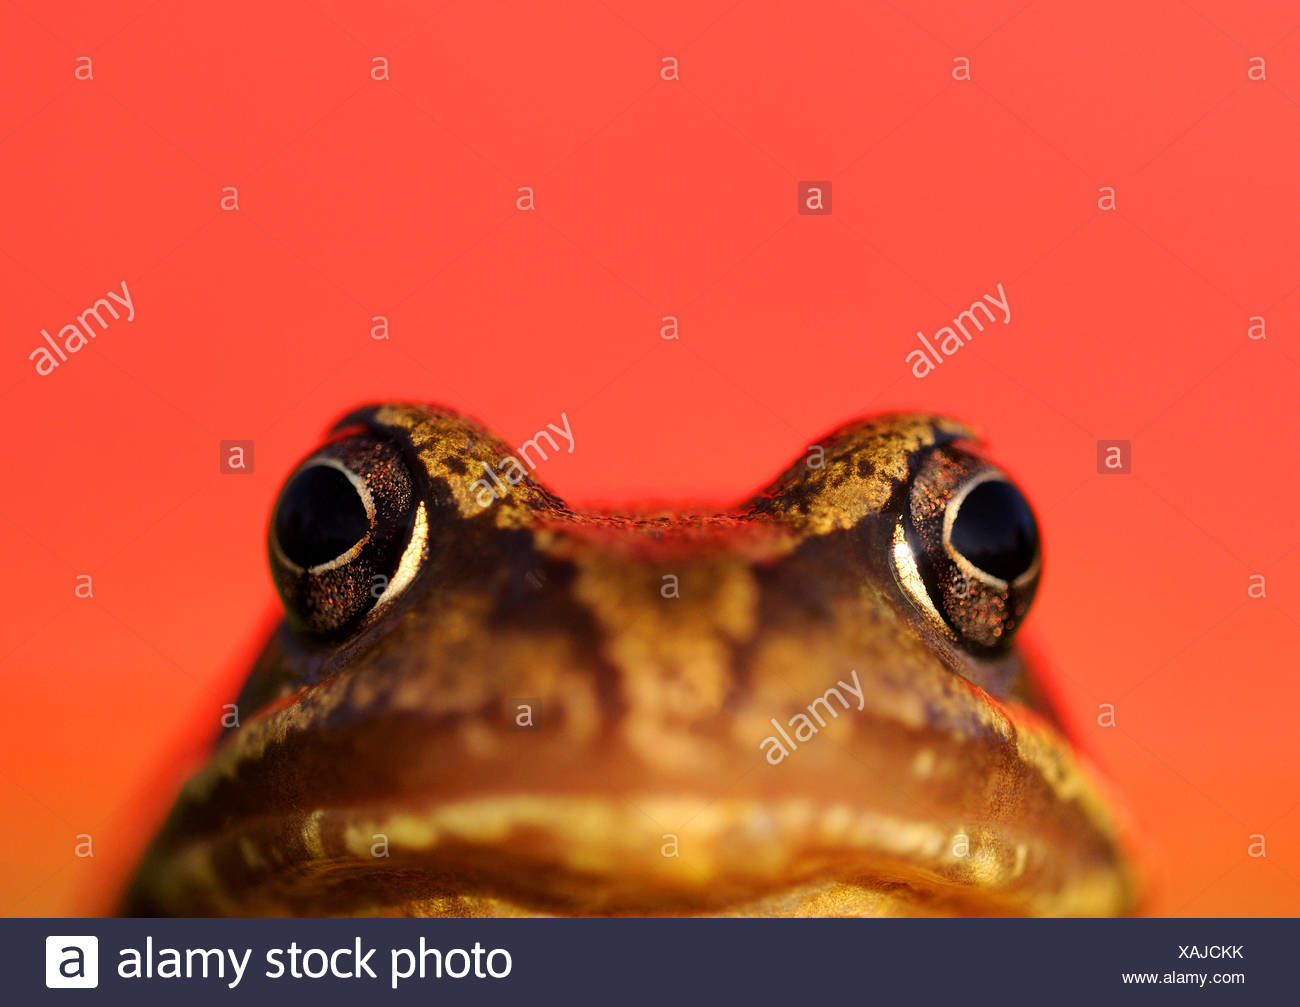 Common frog (Rana temporaria) portrait with red background. UK. - Stock Image